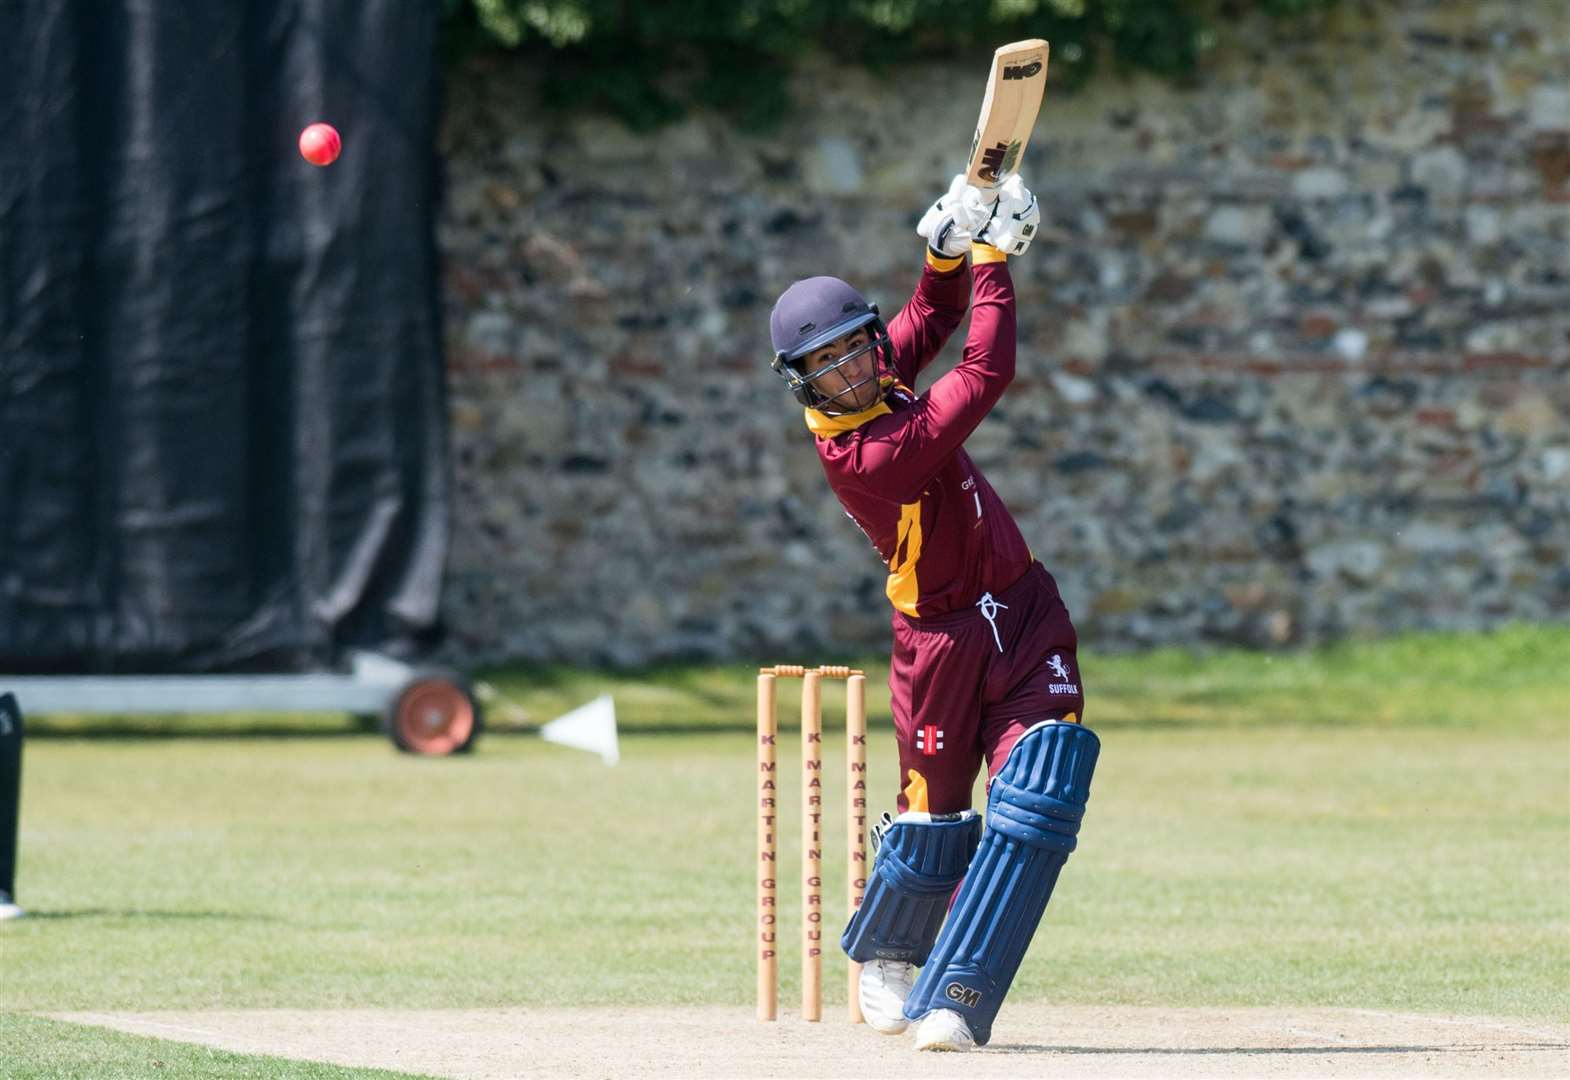 Maiden century for Suffolk leads to Warwickshire call-up for Alex Oxley